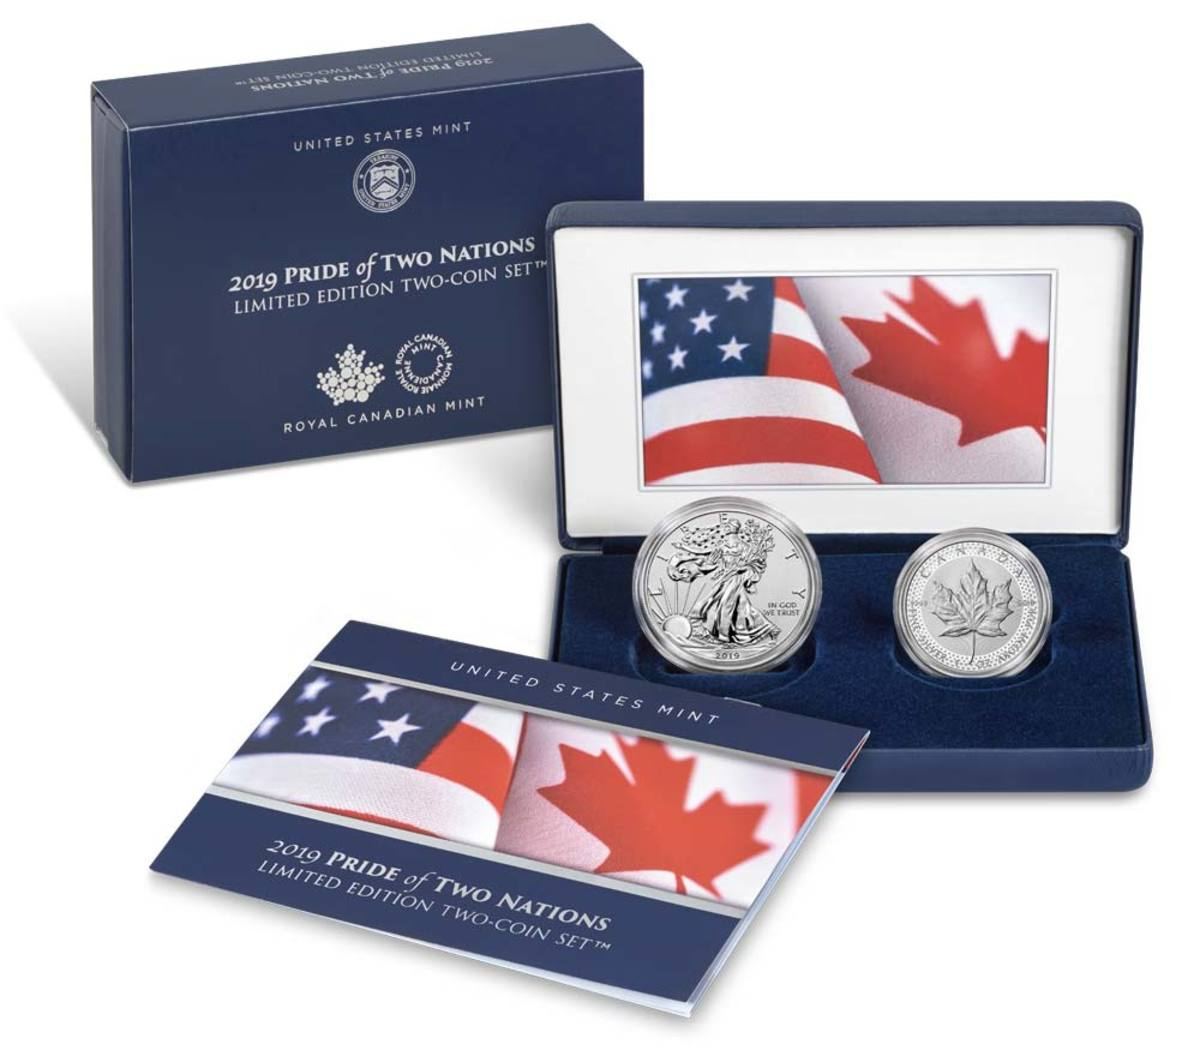 The coins are encapsulated and packaged in a handsome blue leatherette presentation case emblazoned with color imagery of the United States and Canadian flags on the inside cover. A classic outer blue box and matching outer sleeve cover the presentation case. (Image courtesy of the US Mint)